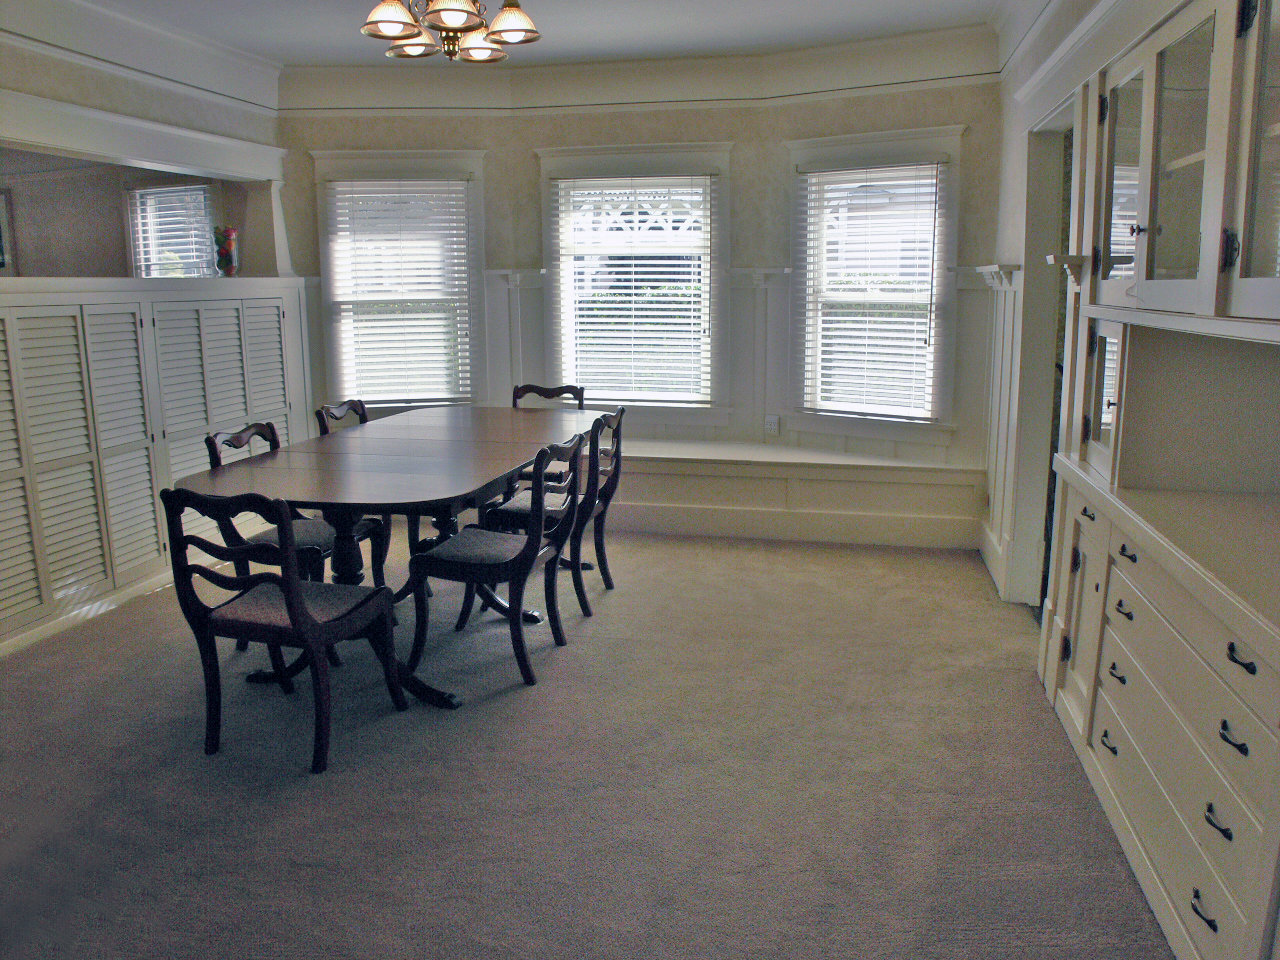 Huge formal dining room with built-in China hutch and window seat. Will easily accommodate large gatherings for holidays and entertaining year 'round.